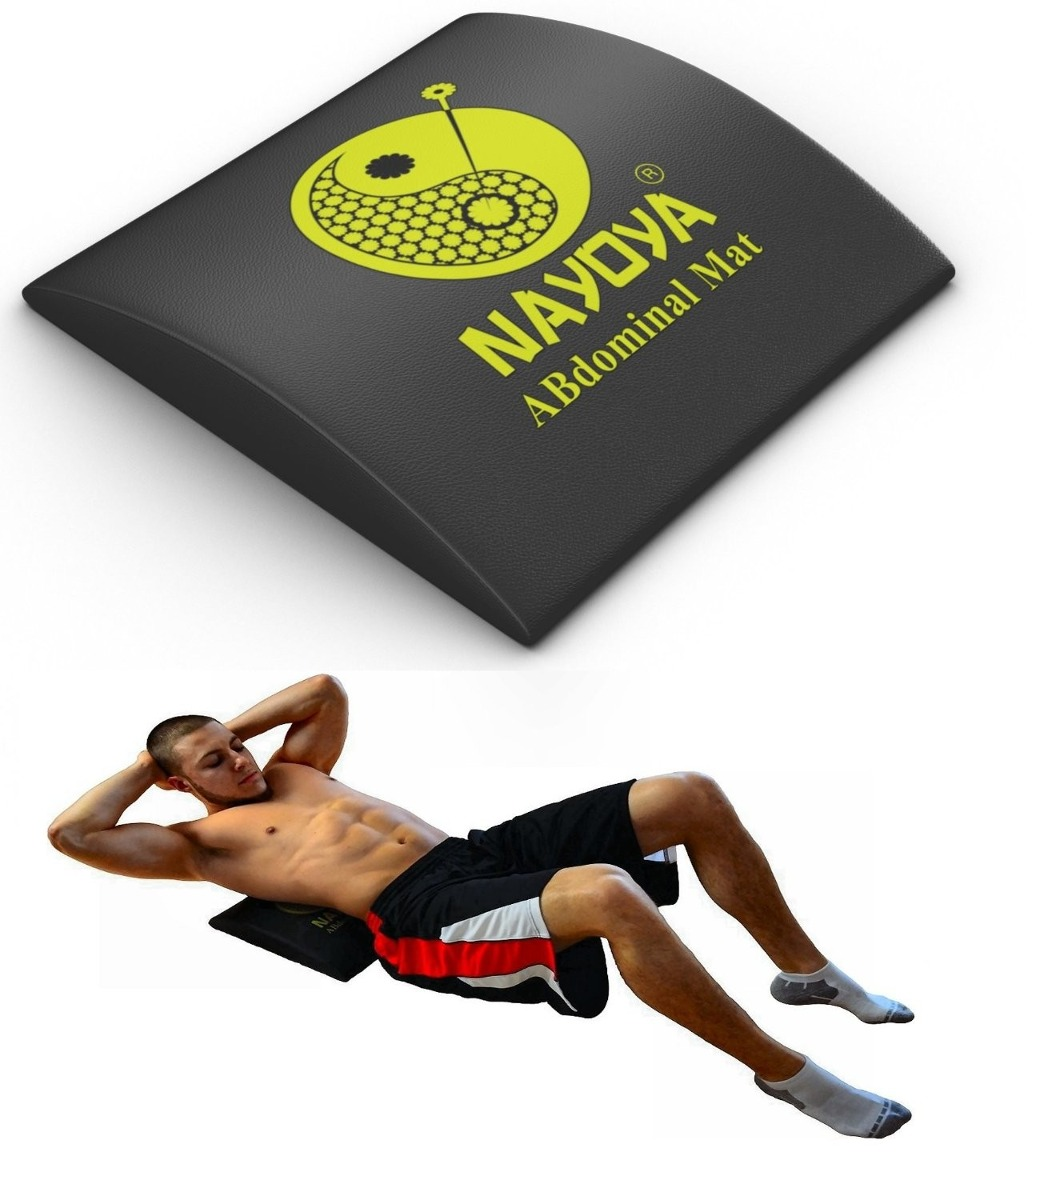 Tb Crossfit Fitness Ab Mat- Ab Workouts